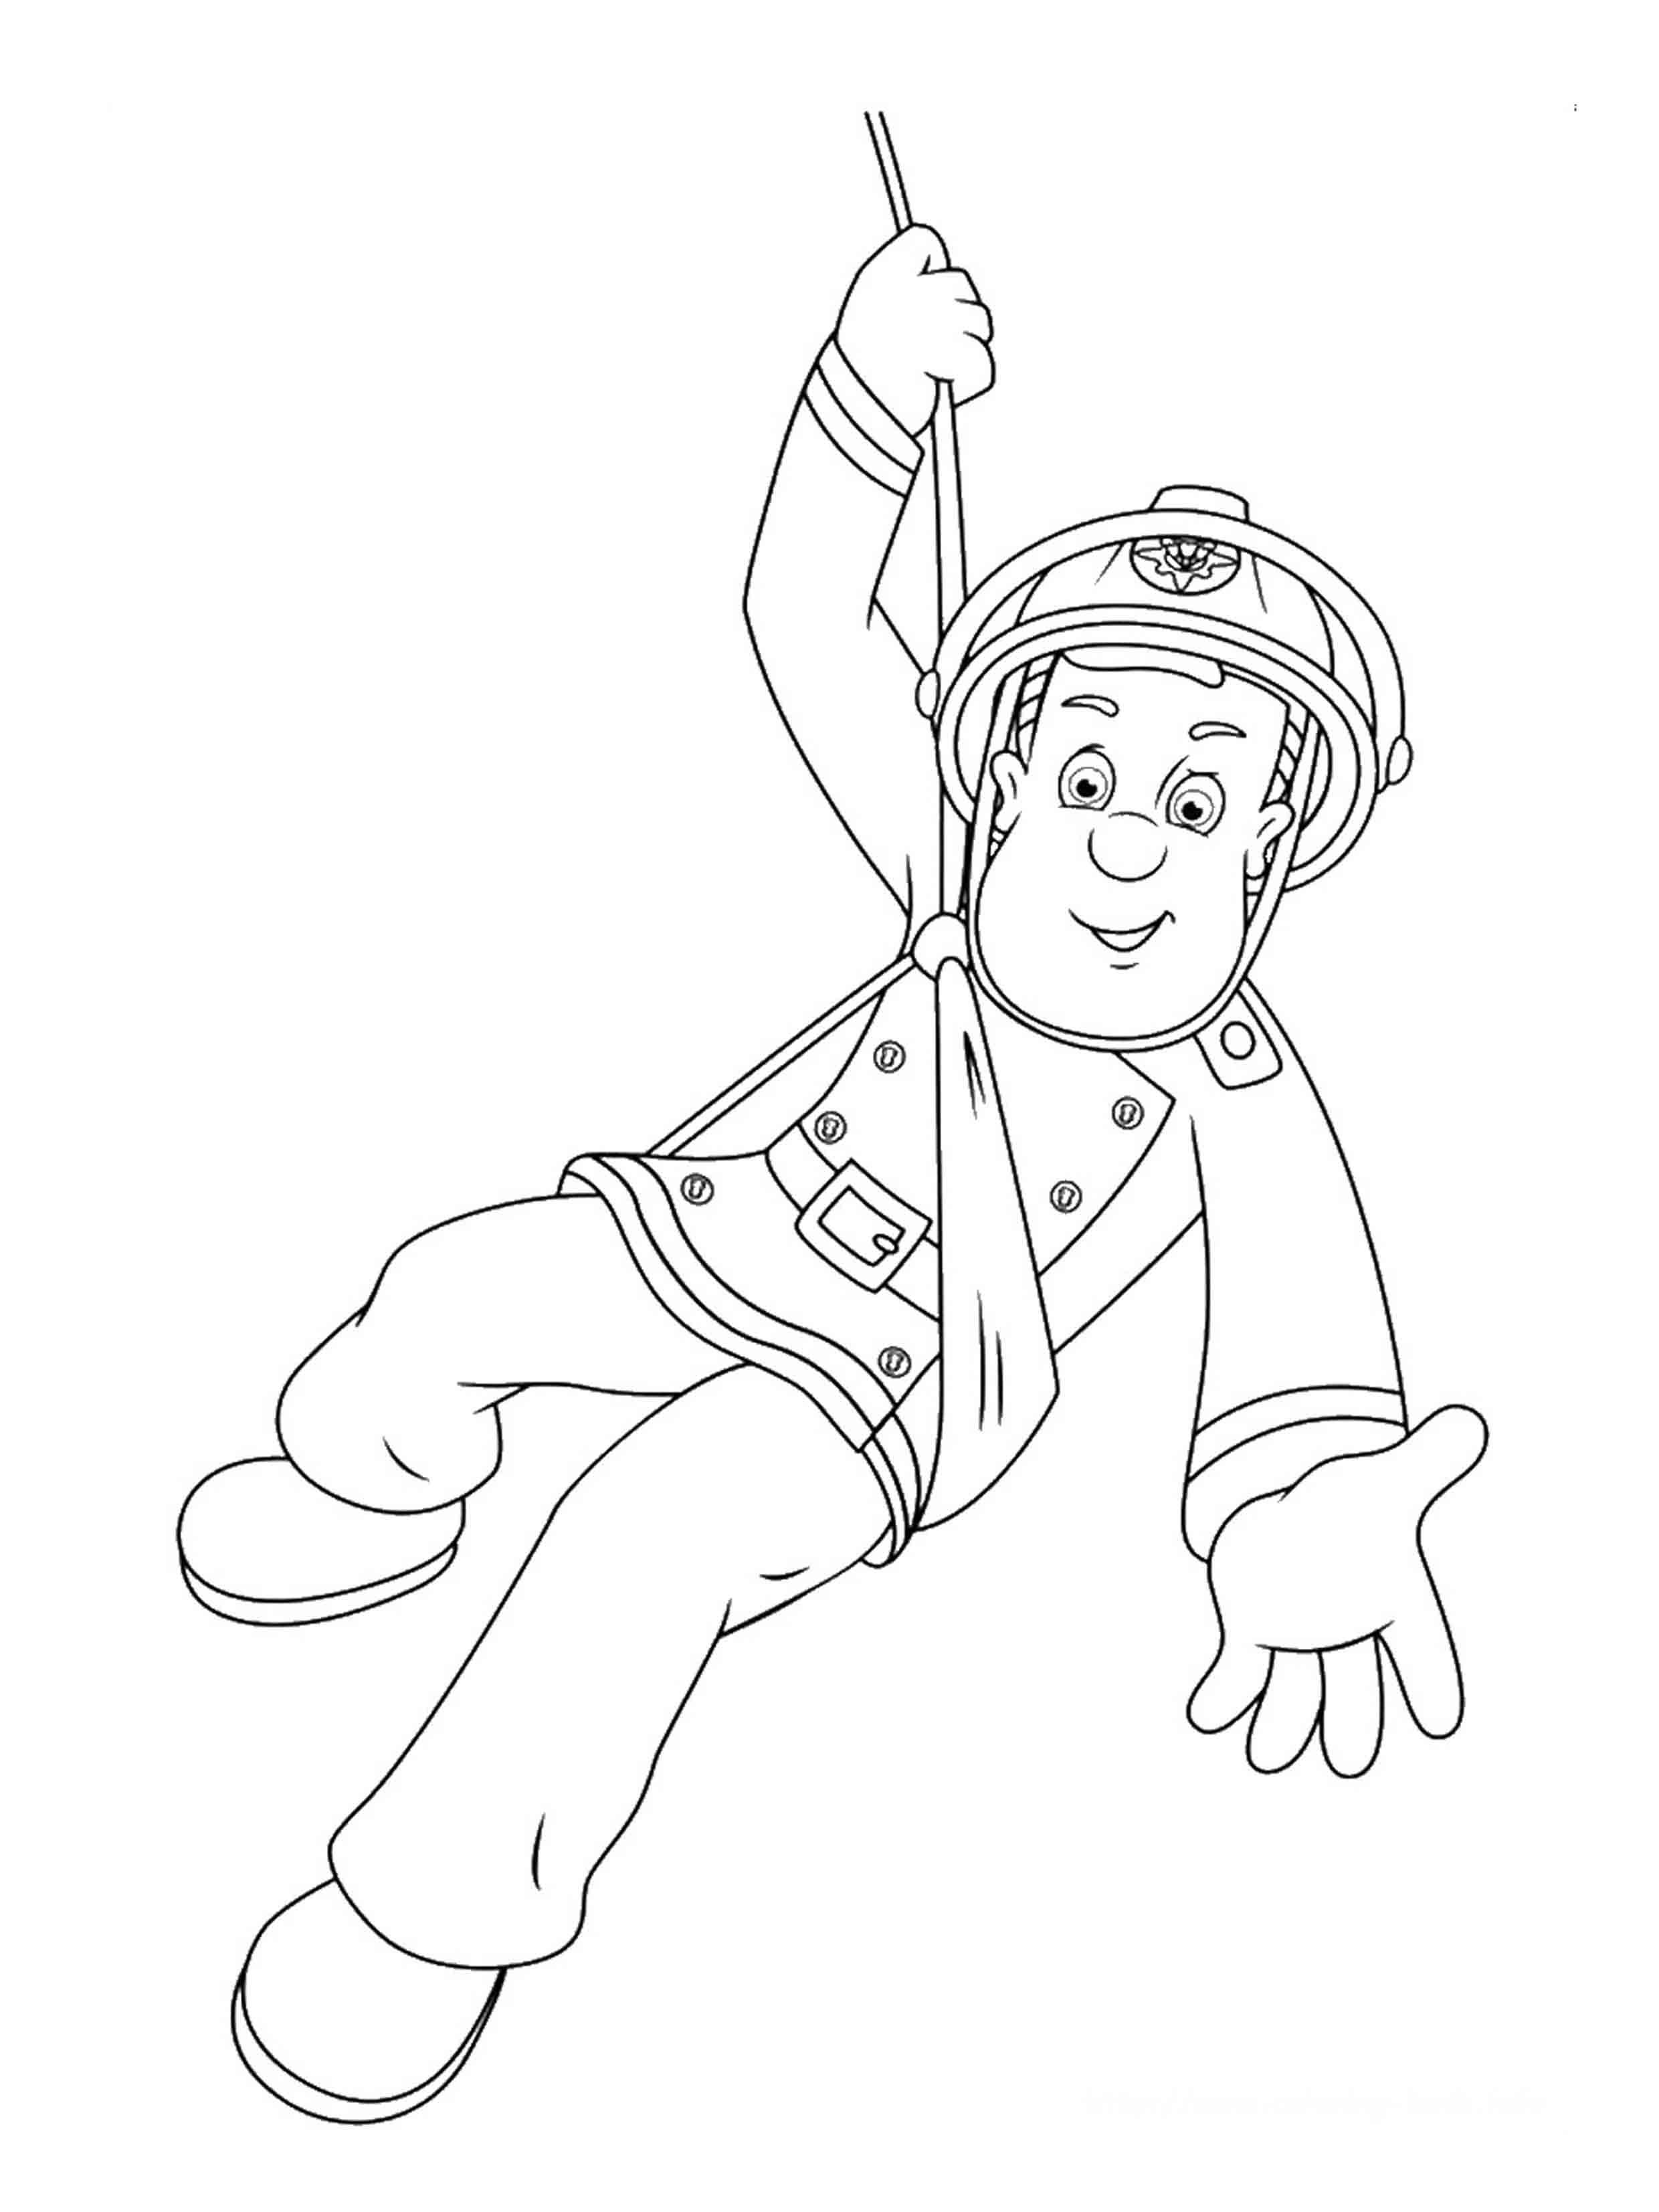 coloring book pages fireman - photo#38